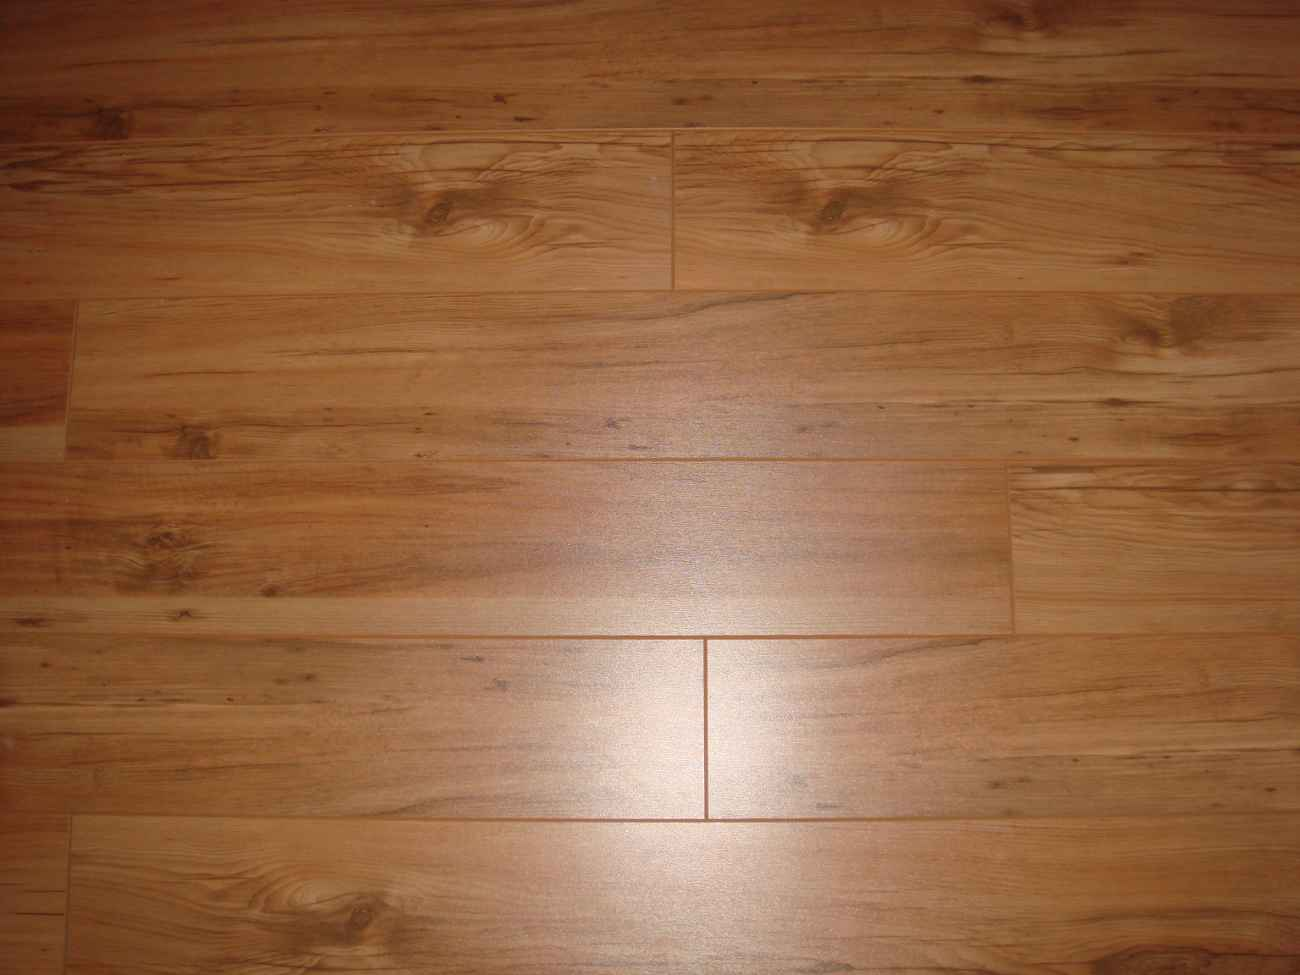 Wooden Ceramic Tile Floors